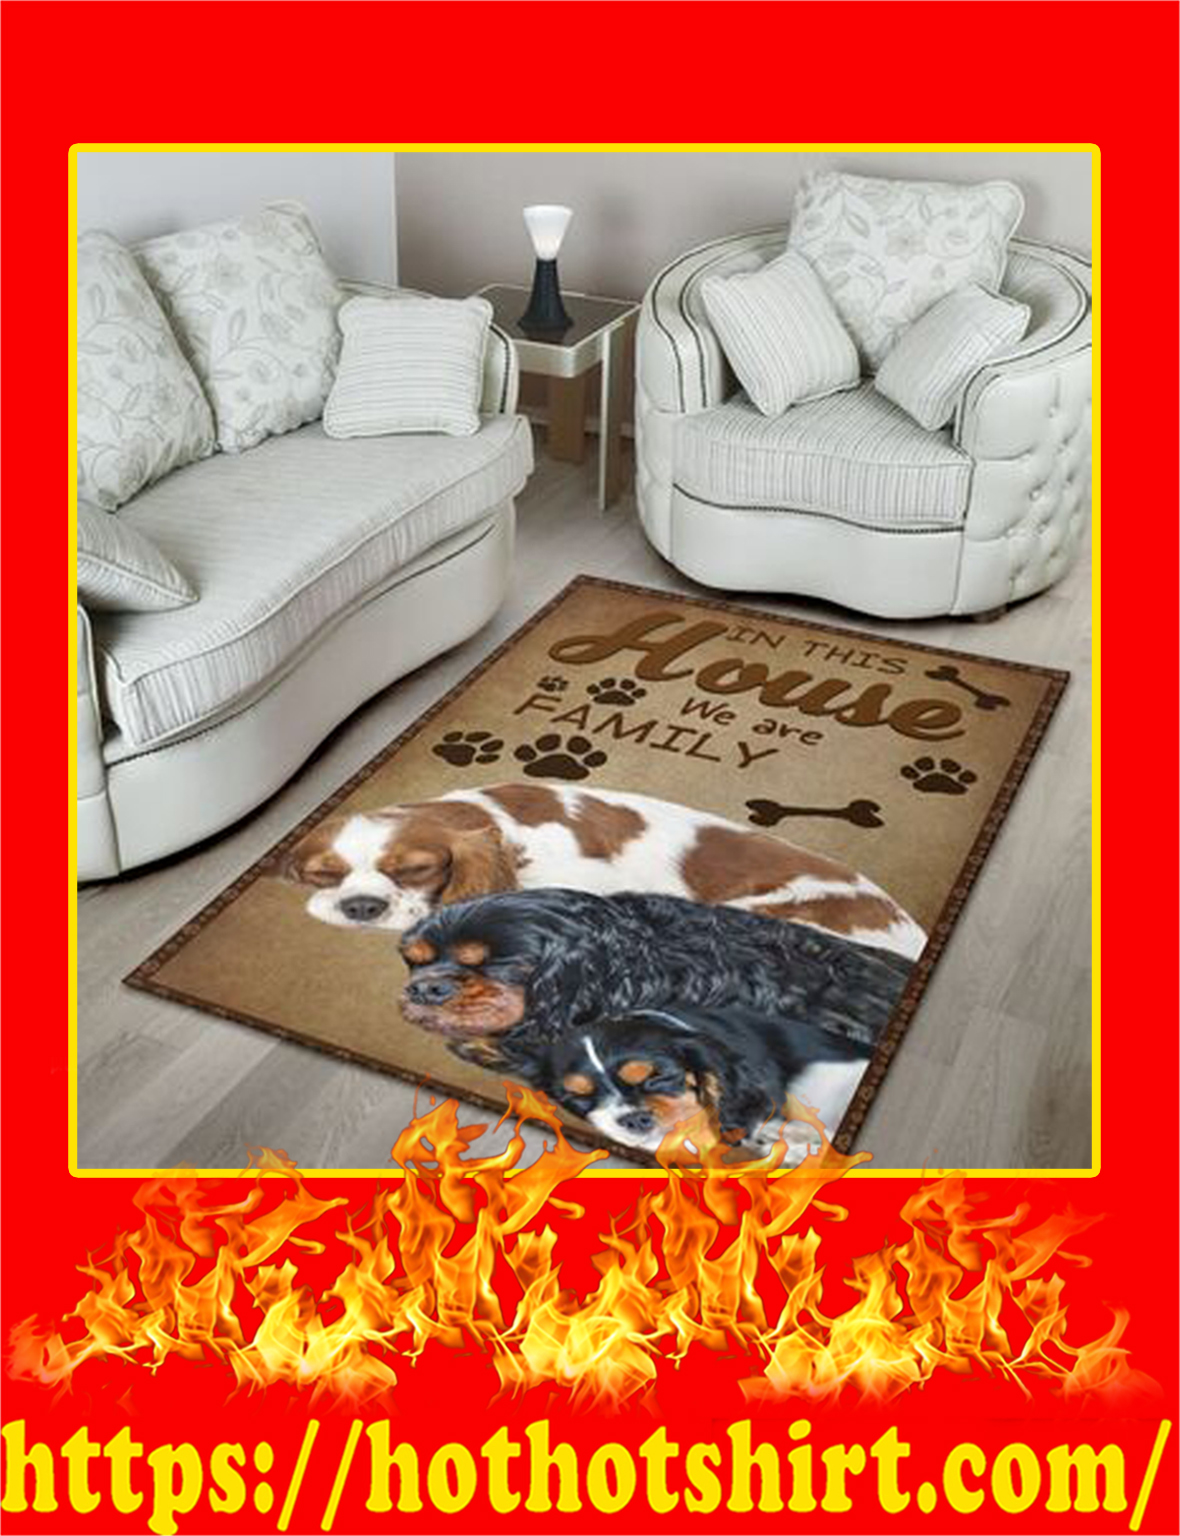 In This House We Are Family Cavalier King Charles Spaniel Rug- large